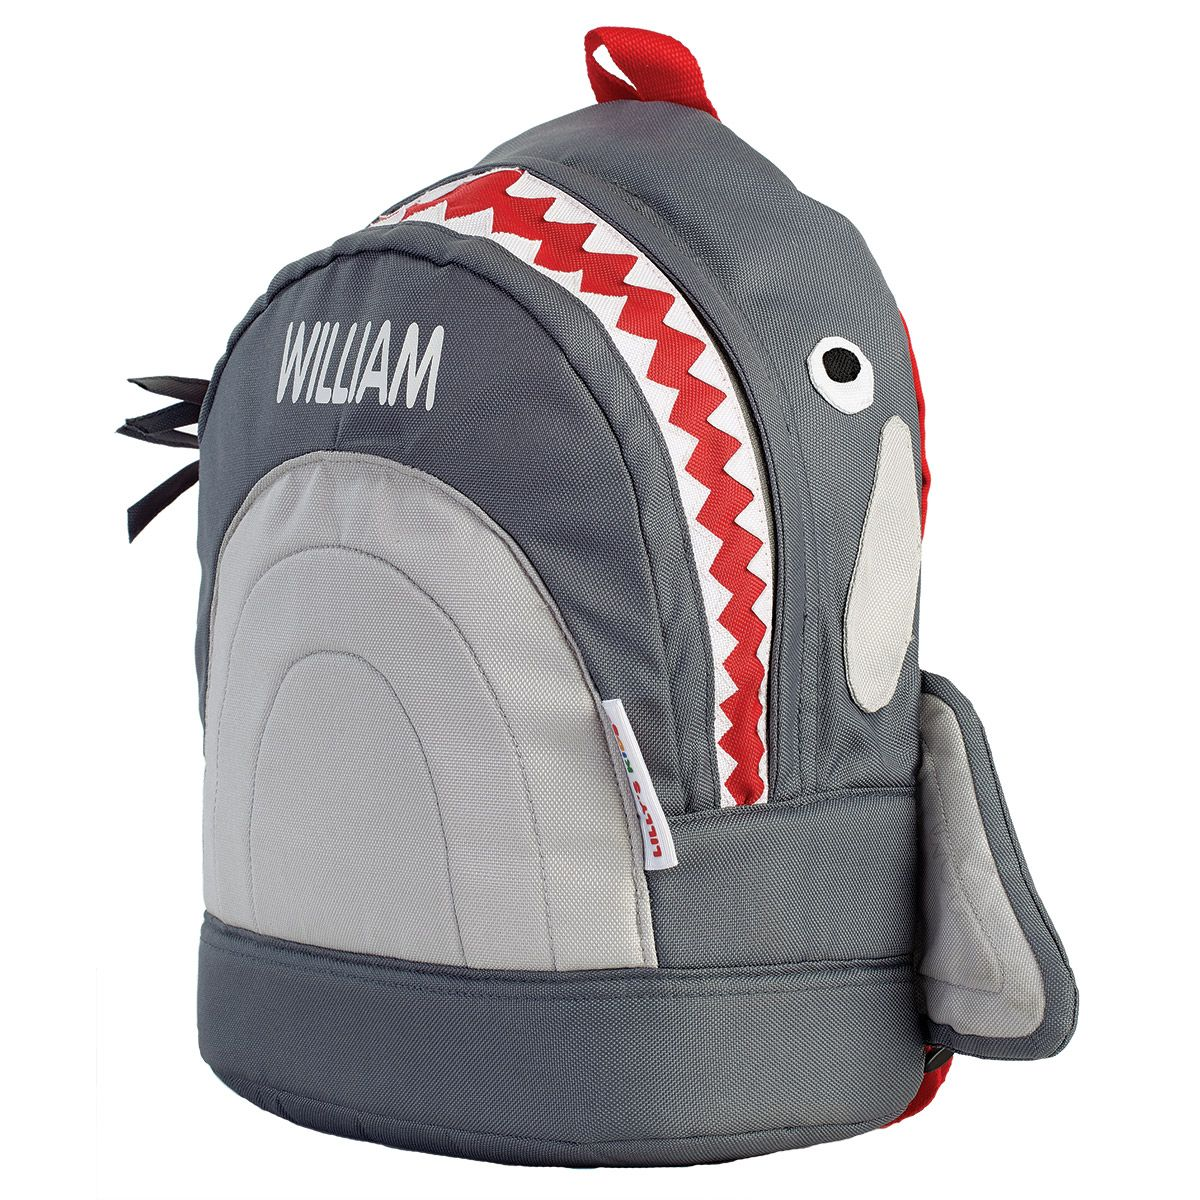 Grey Shark 3-D Personalized Backpack